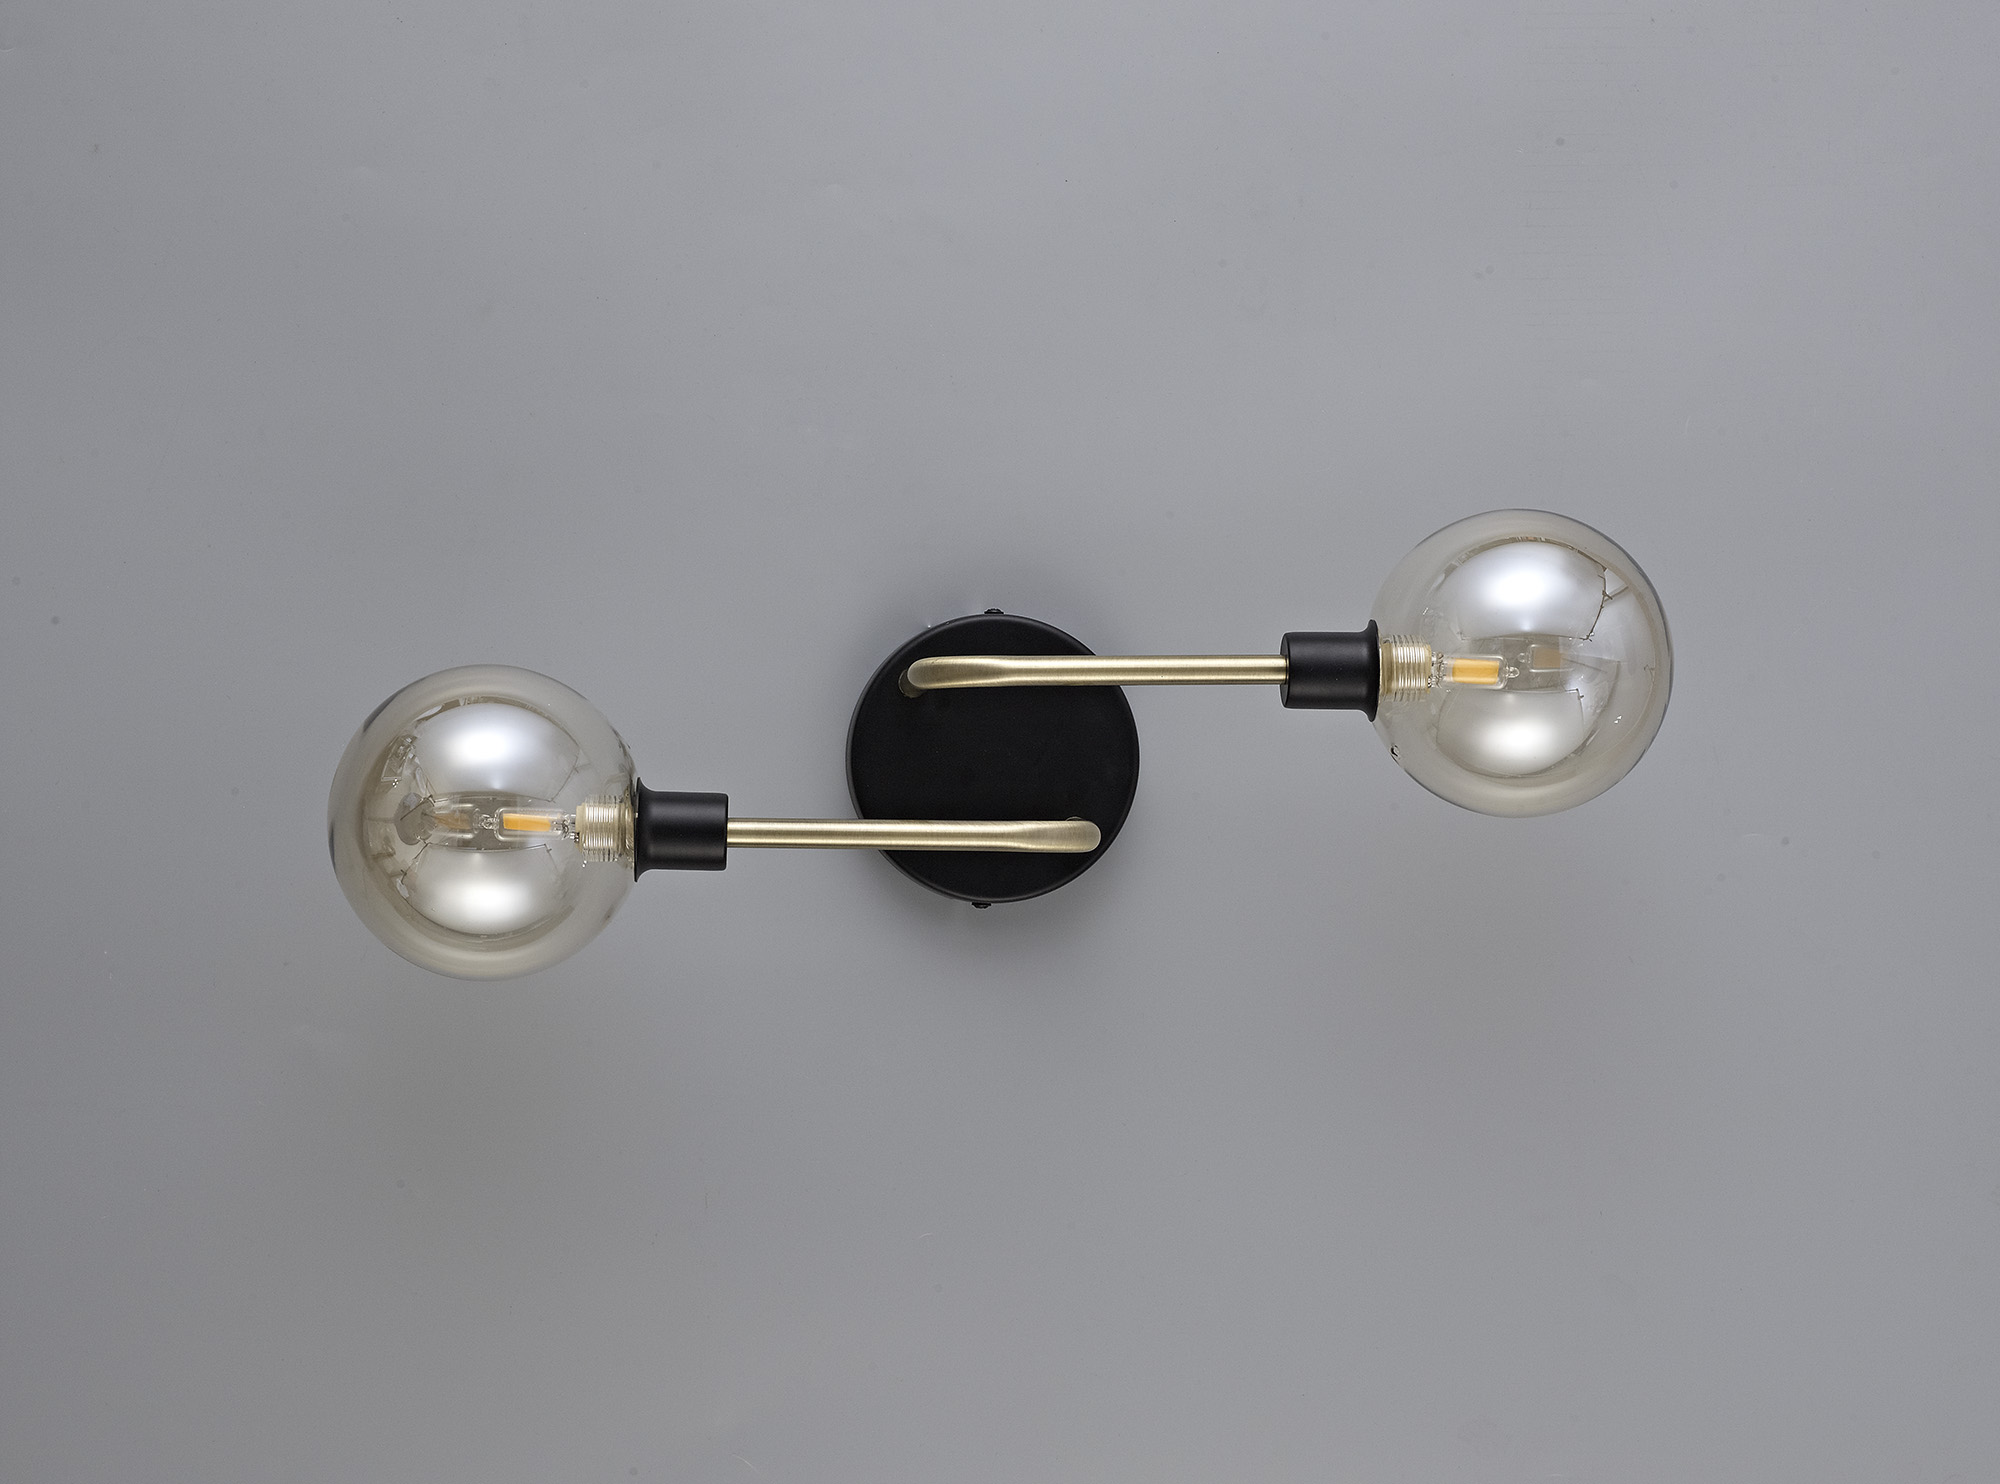 Wall Lamp, 2 Light G9, Matt Black/Antique Brass/Cognac Glass